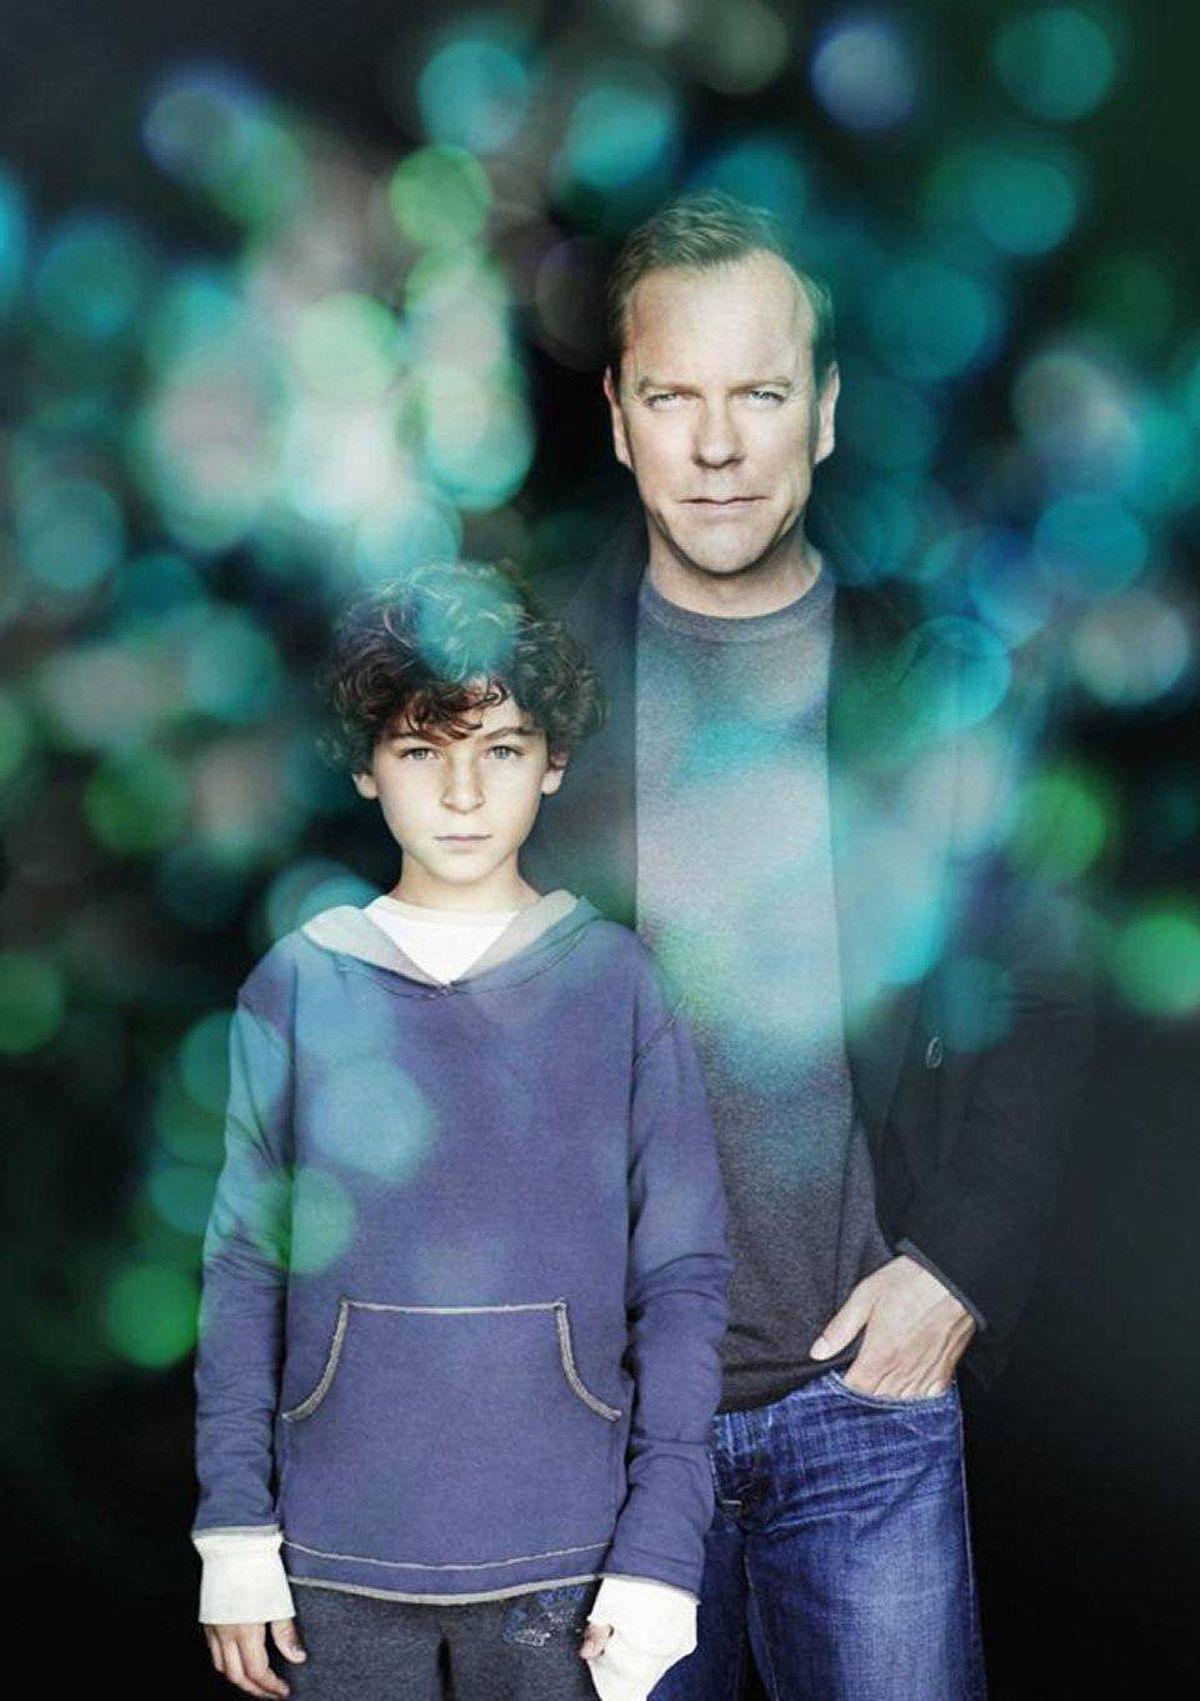 DRAMA Touch Fox, 8 p.m. Eight seasons of 24 has certainly put Kiefer Sutherland in the good graces of the Fox Network. Despite mediocre ratings and a maddeningly complex plotline, this supernatural series starring Sutherland as the widower father of an autistic, possibly omniscient, 11-year-old boy was recently renewed for a second season. The story becomes even more complicated in tonight's two-hour closer in which Sutherland's character of Martin fends off the advances of the ominous Aster Corporation (formerly the Hanso Foundation?) that wants to study his son, Jake (David Mazouz). The closer also introduces Maria Bello – seen most recently on the ill-fated American remake of Prime Suspect – as a mother whose daughter shares the same abilities as Martin's son.